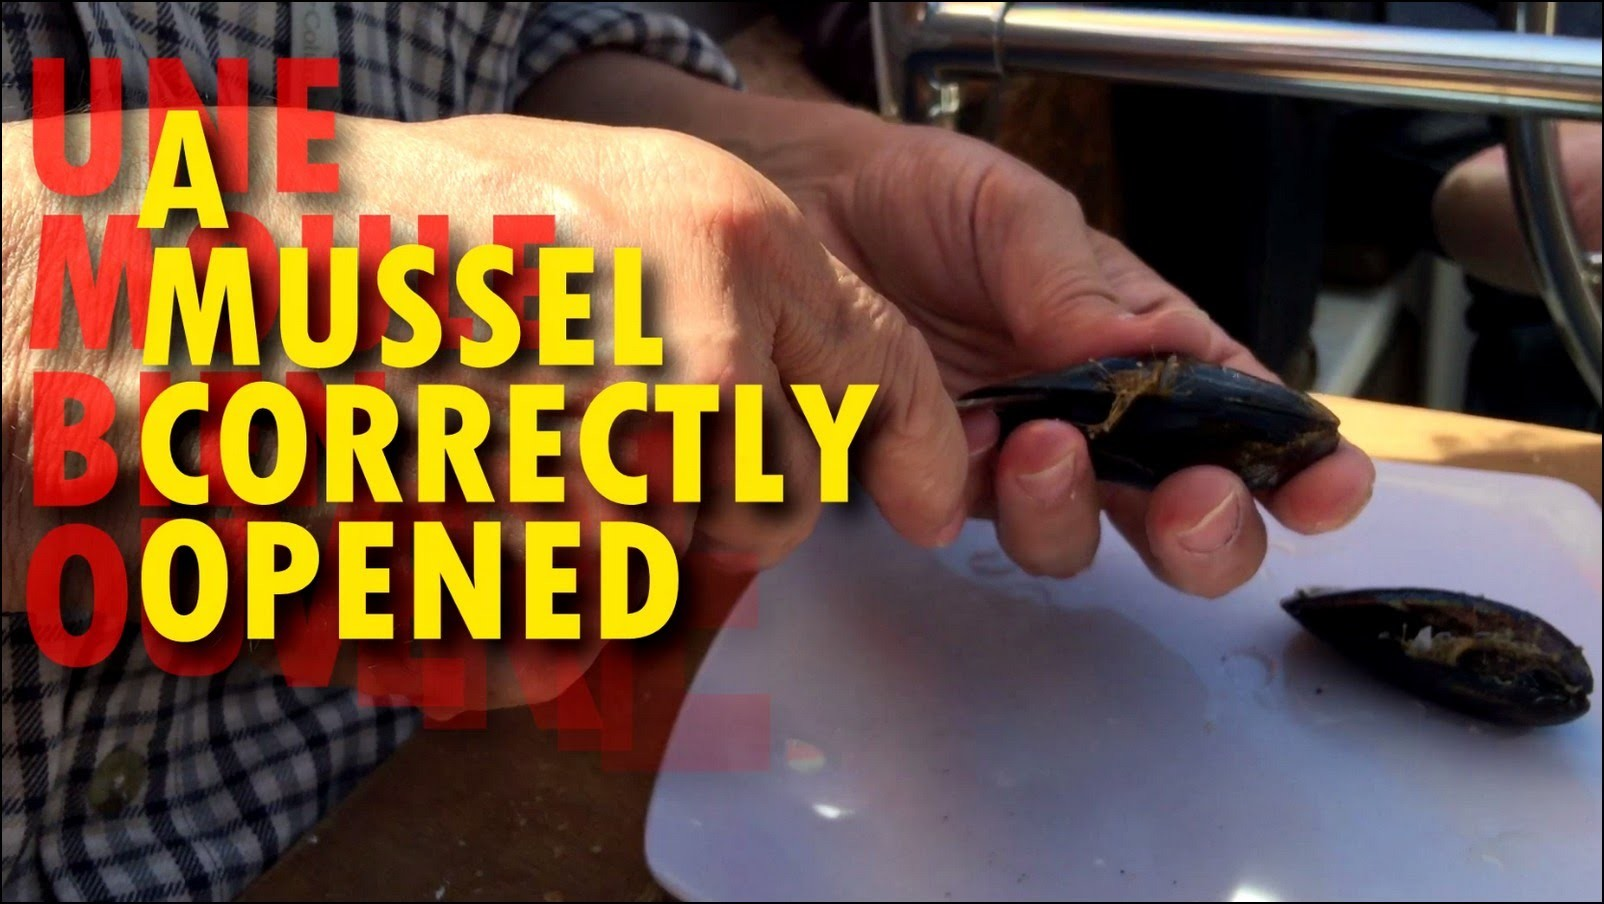 How to open a mussel easily | ★ | Germaine bricole | DIY